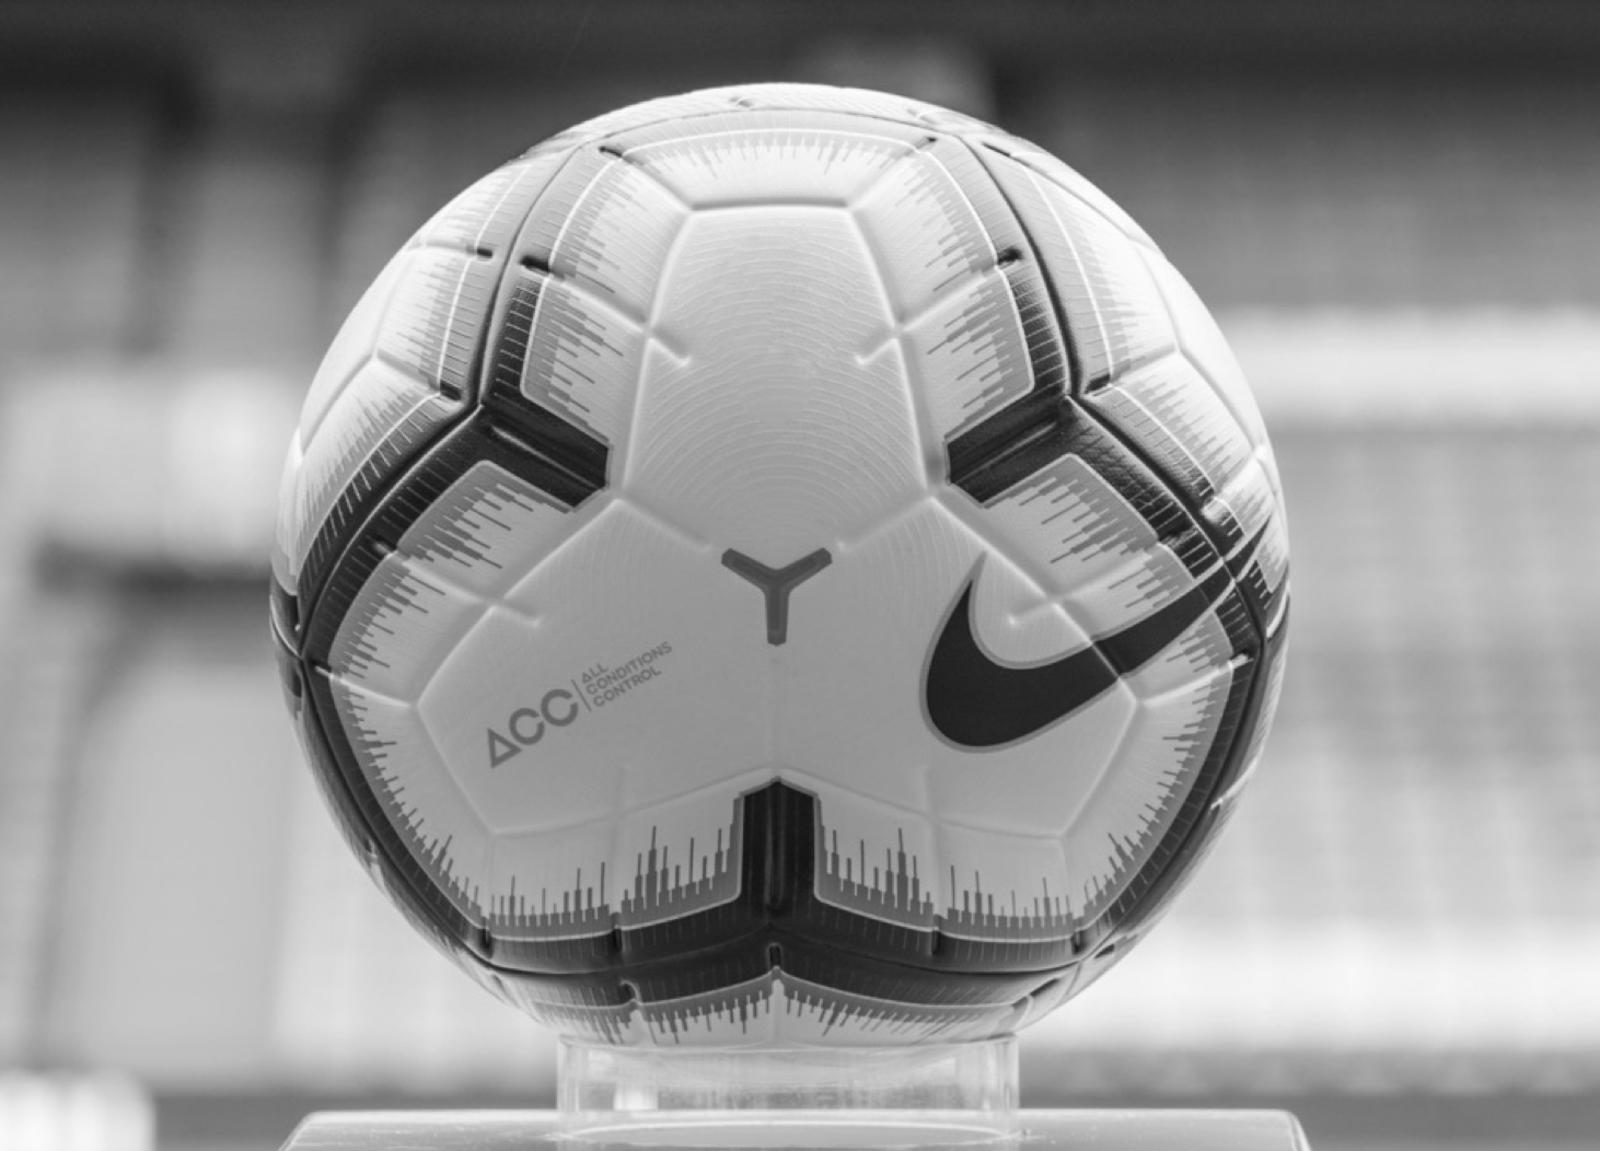 The Nike Merlin Soccer Ball - Nike News b9fb54e50c